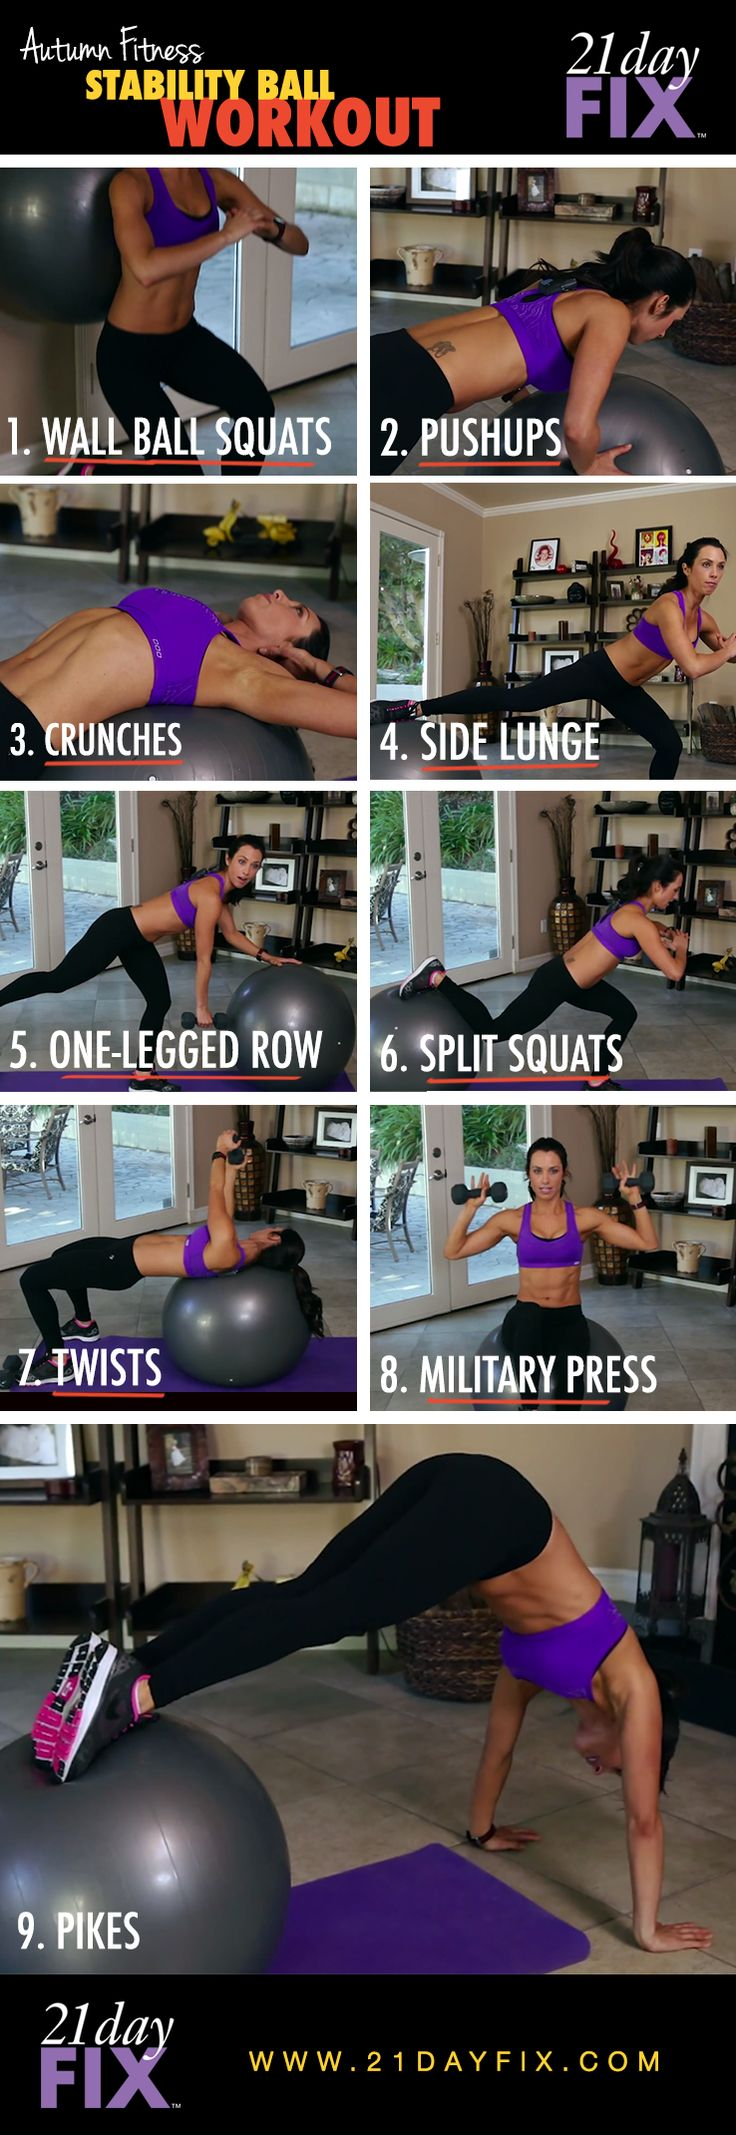 Stability ball workout, ball workout, in-home workout, quick workout, quick fixes, 21 day fix, autumn calabrese.  BELIEVE it or not, you can still lose weight even if you can't do some of these moves!  The modifier in this program is AMAZING! Click here and you'll have info in your inbox in no time! http://go.ncfitclub.net/21-day-fix/